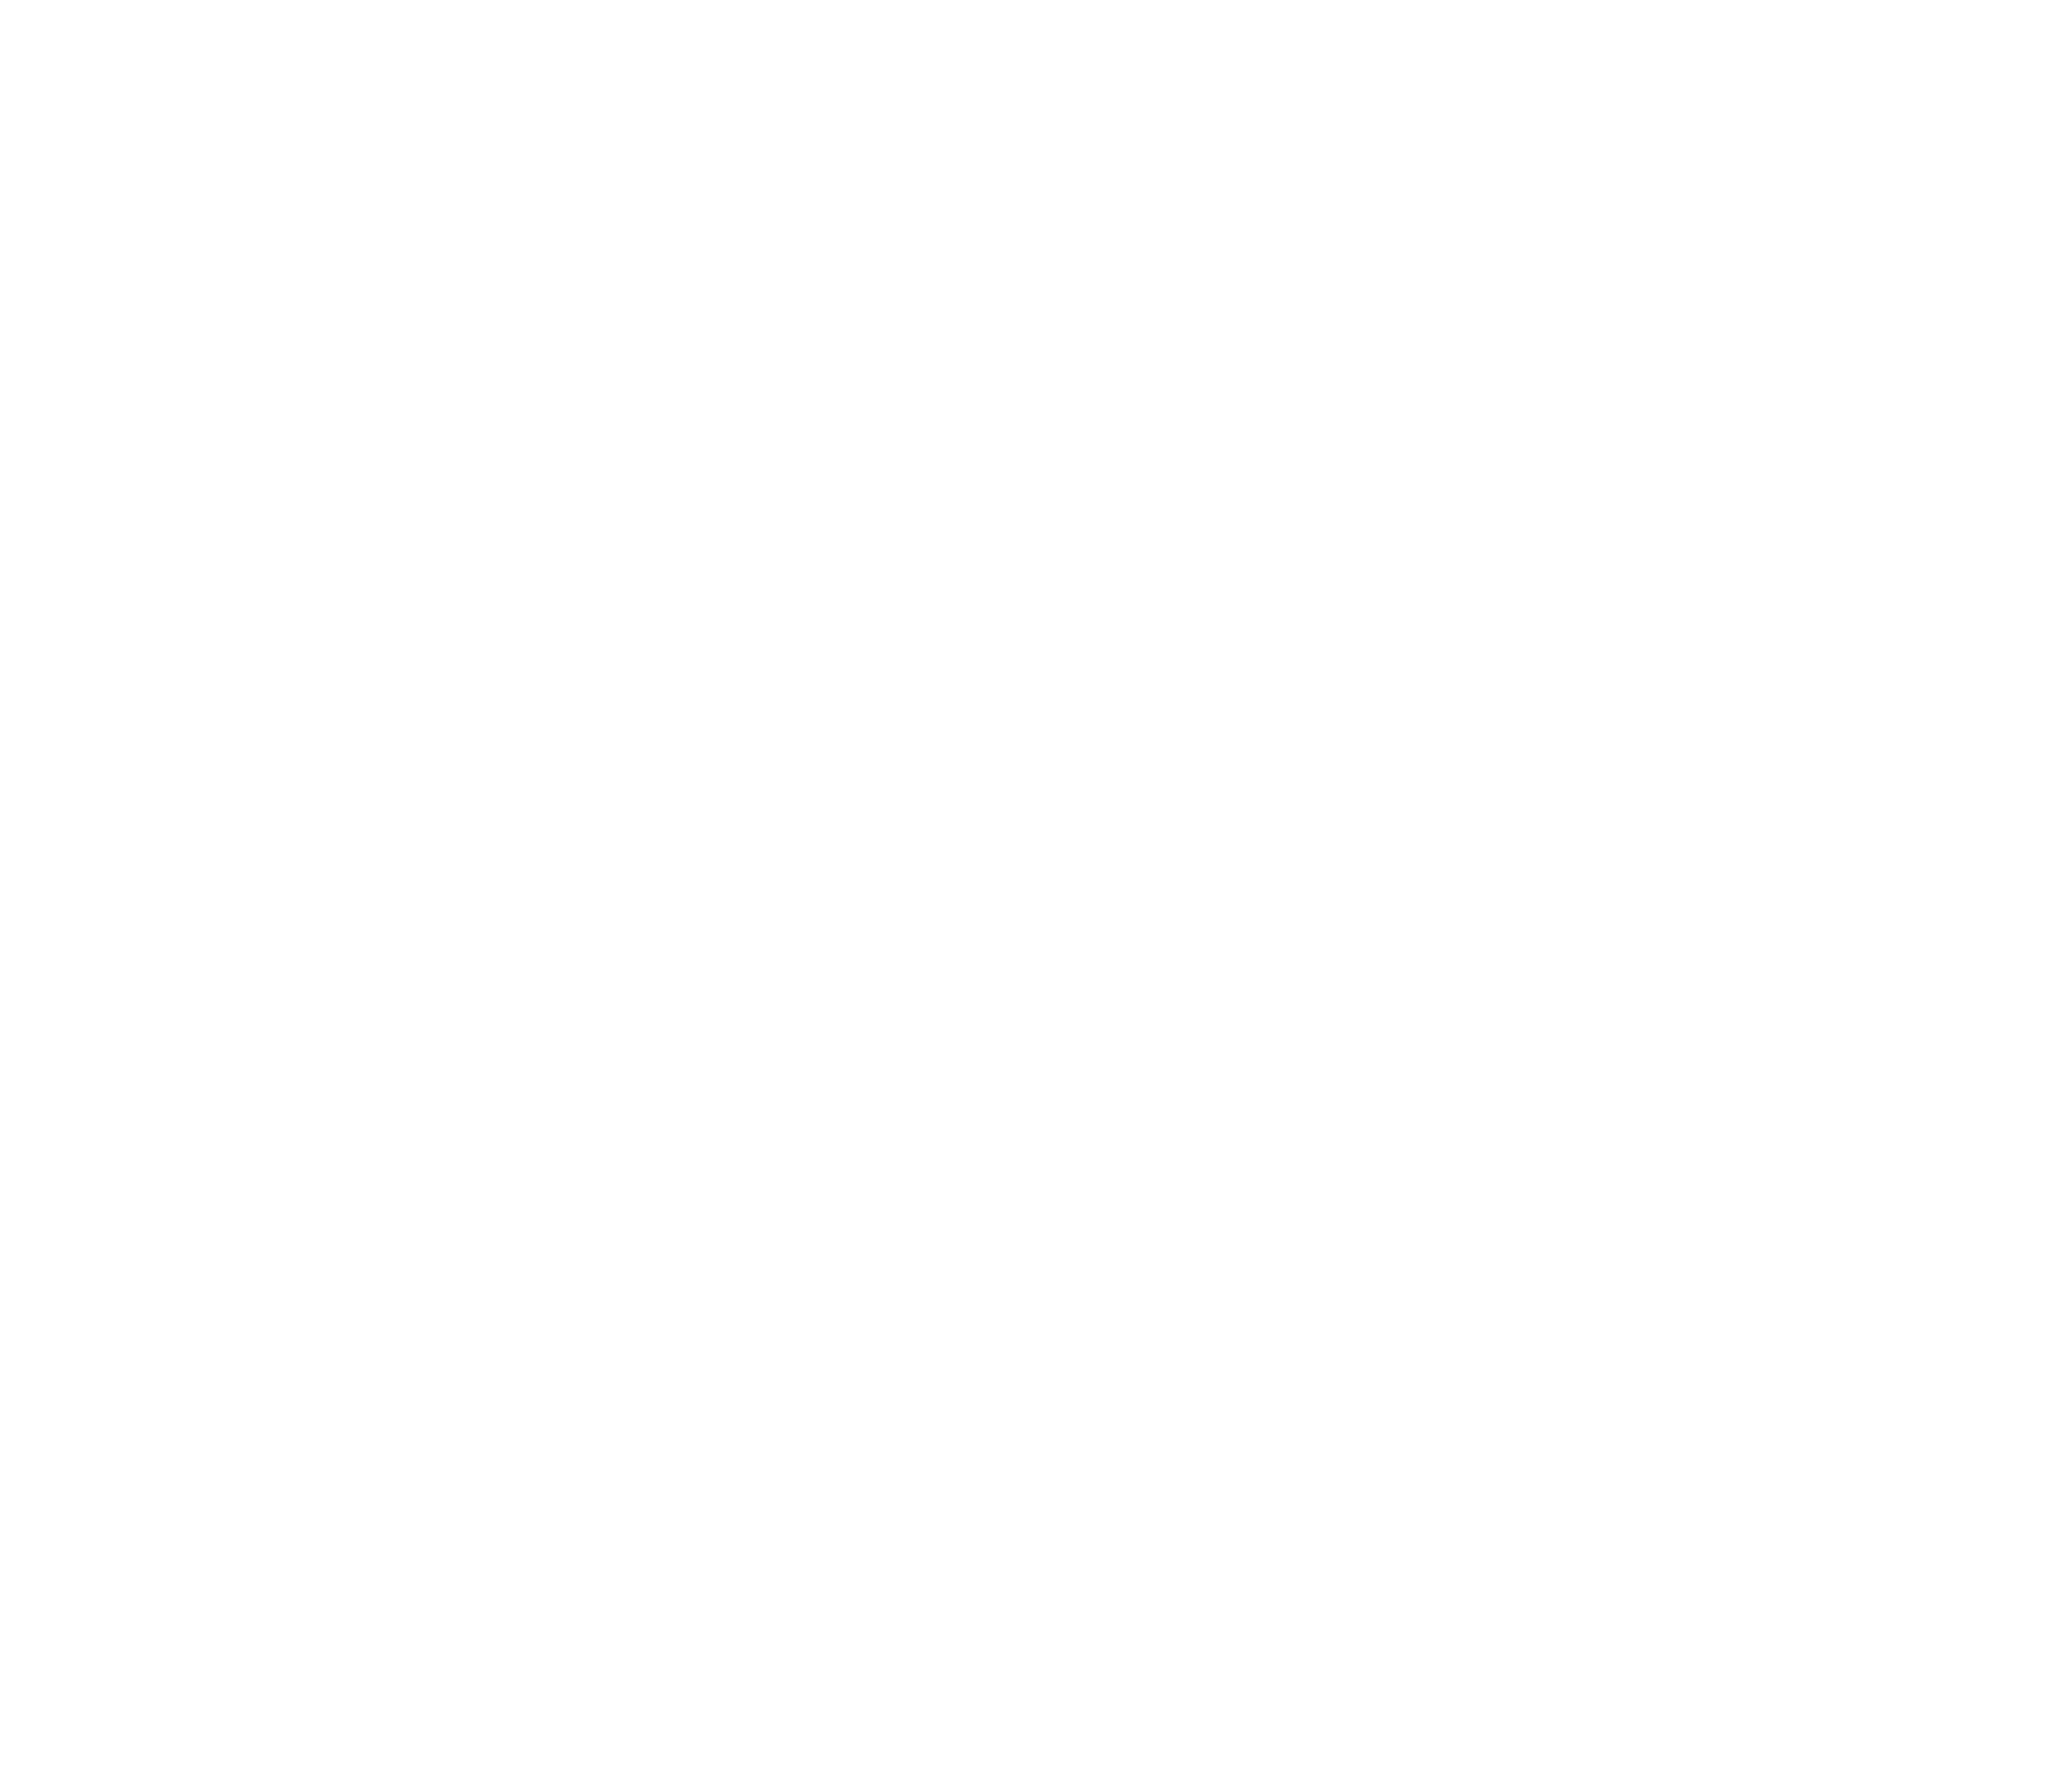 MCLB BARSTOW FIRE